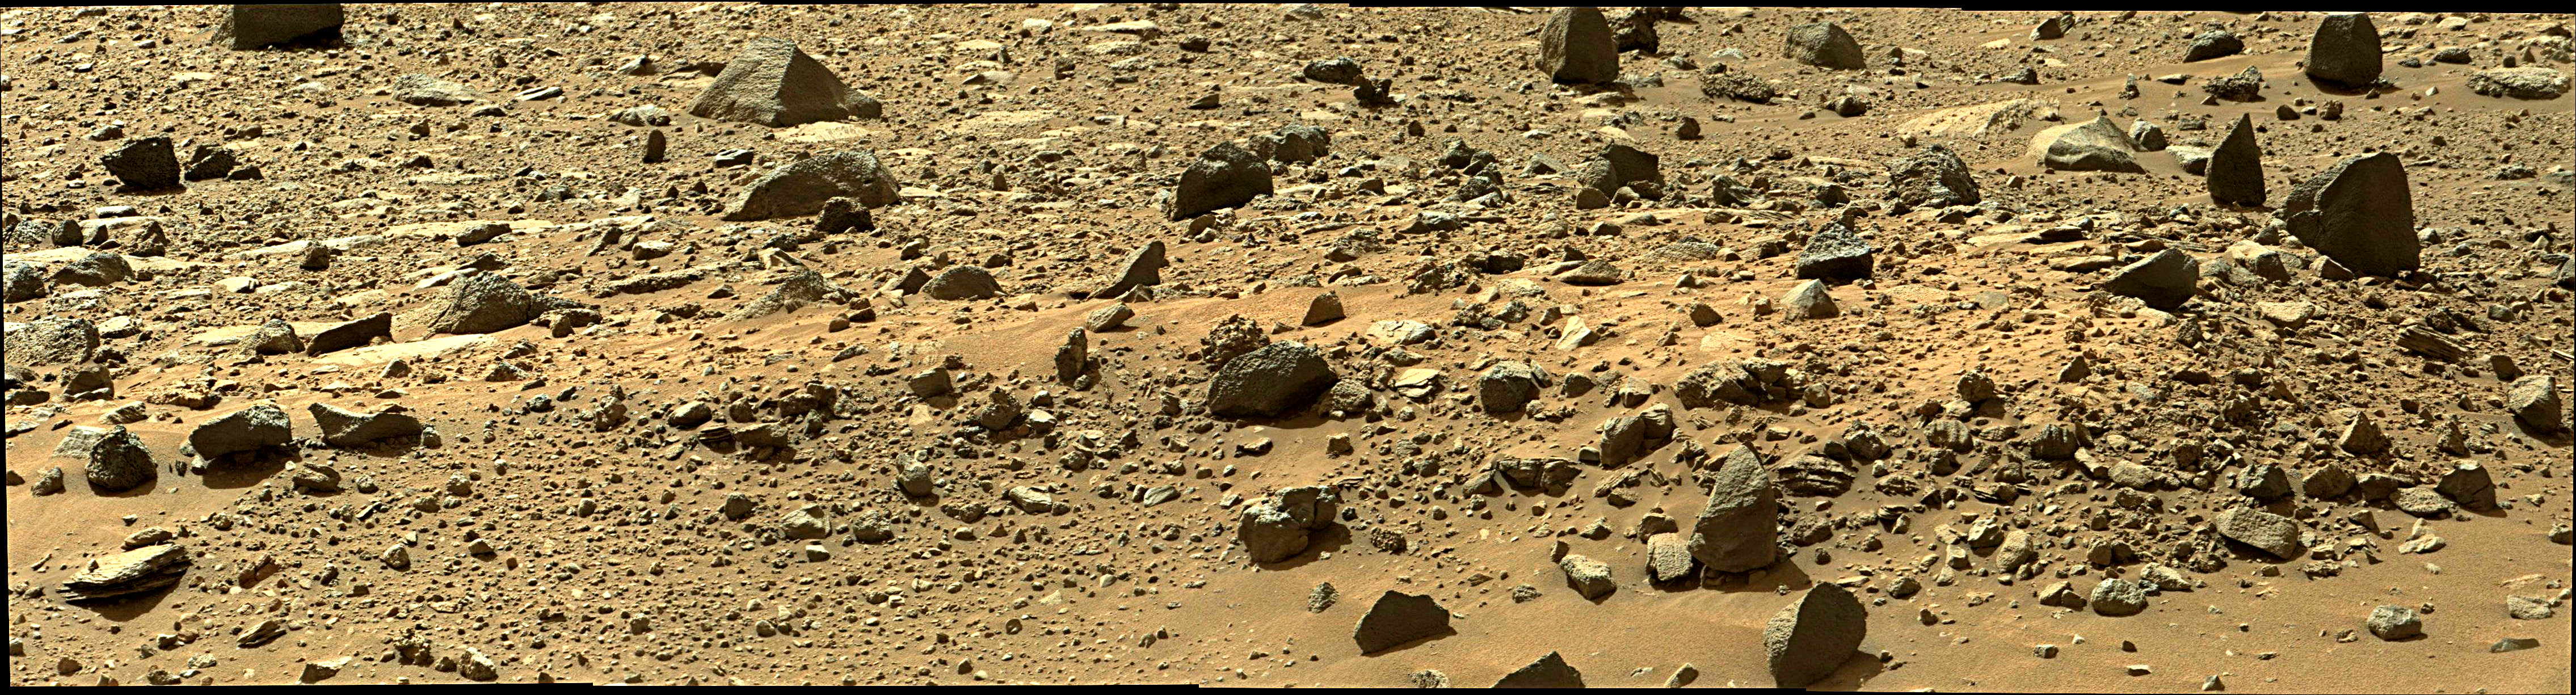 Curiosity Rover Composite View 2e of Mars Sol 1405 – Click to enlarge